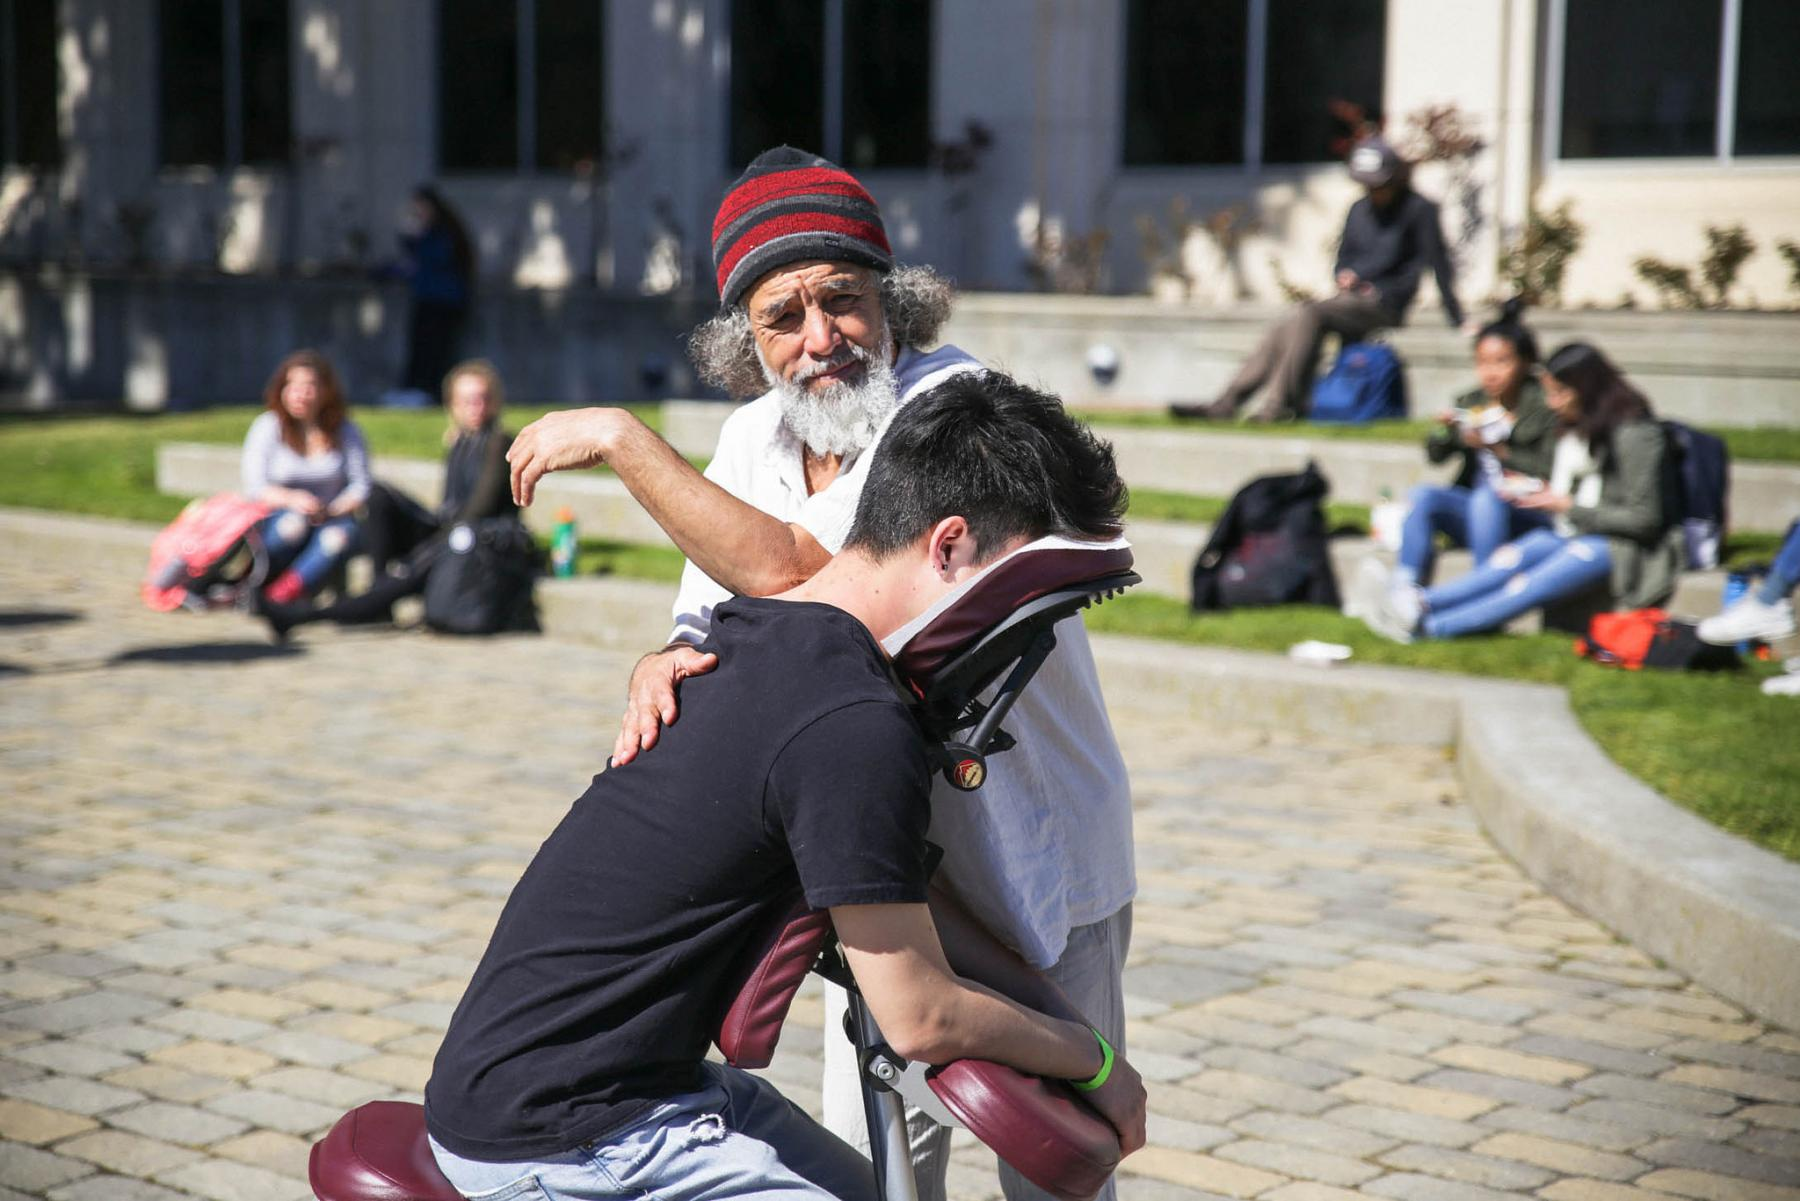 Student Getting a Massage